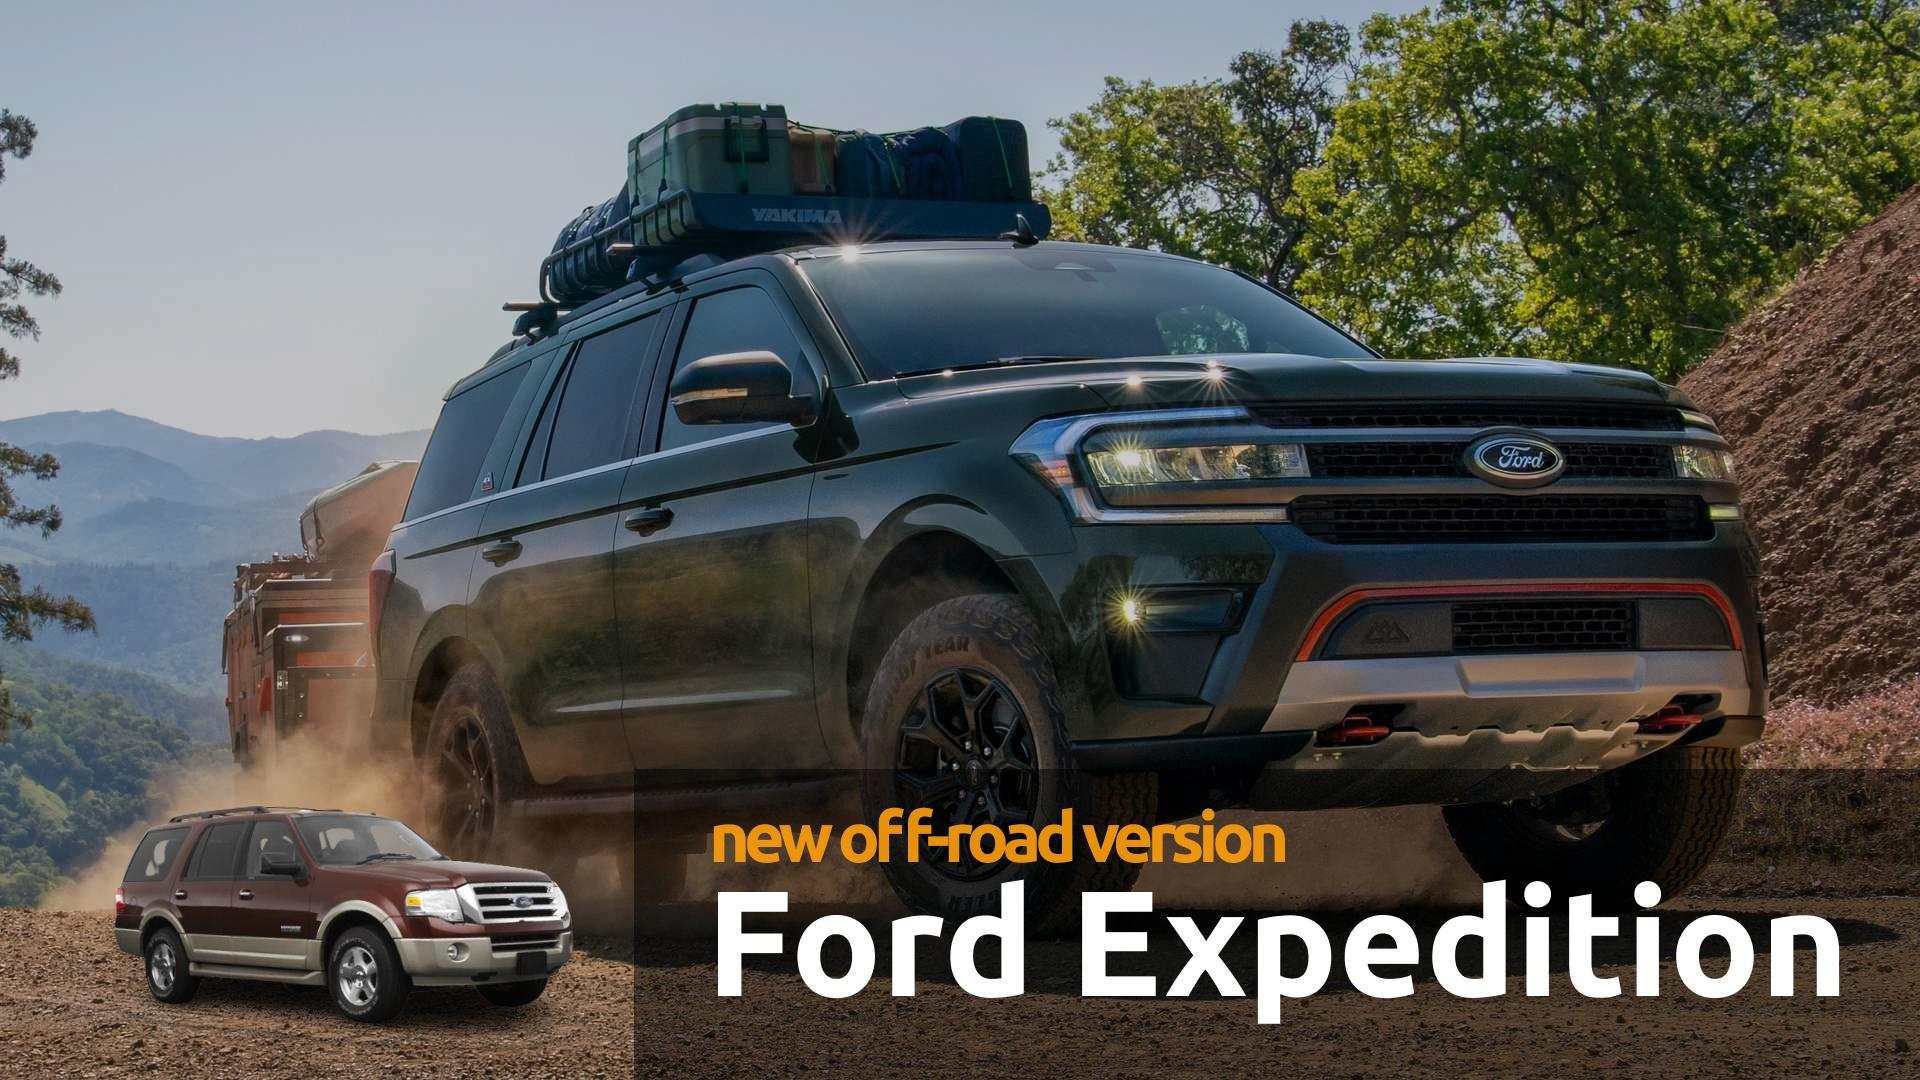 Ford Expedition: image